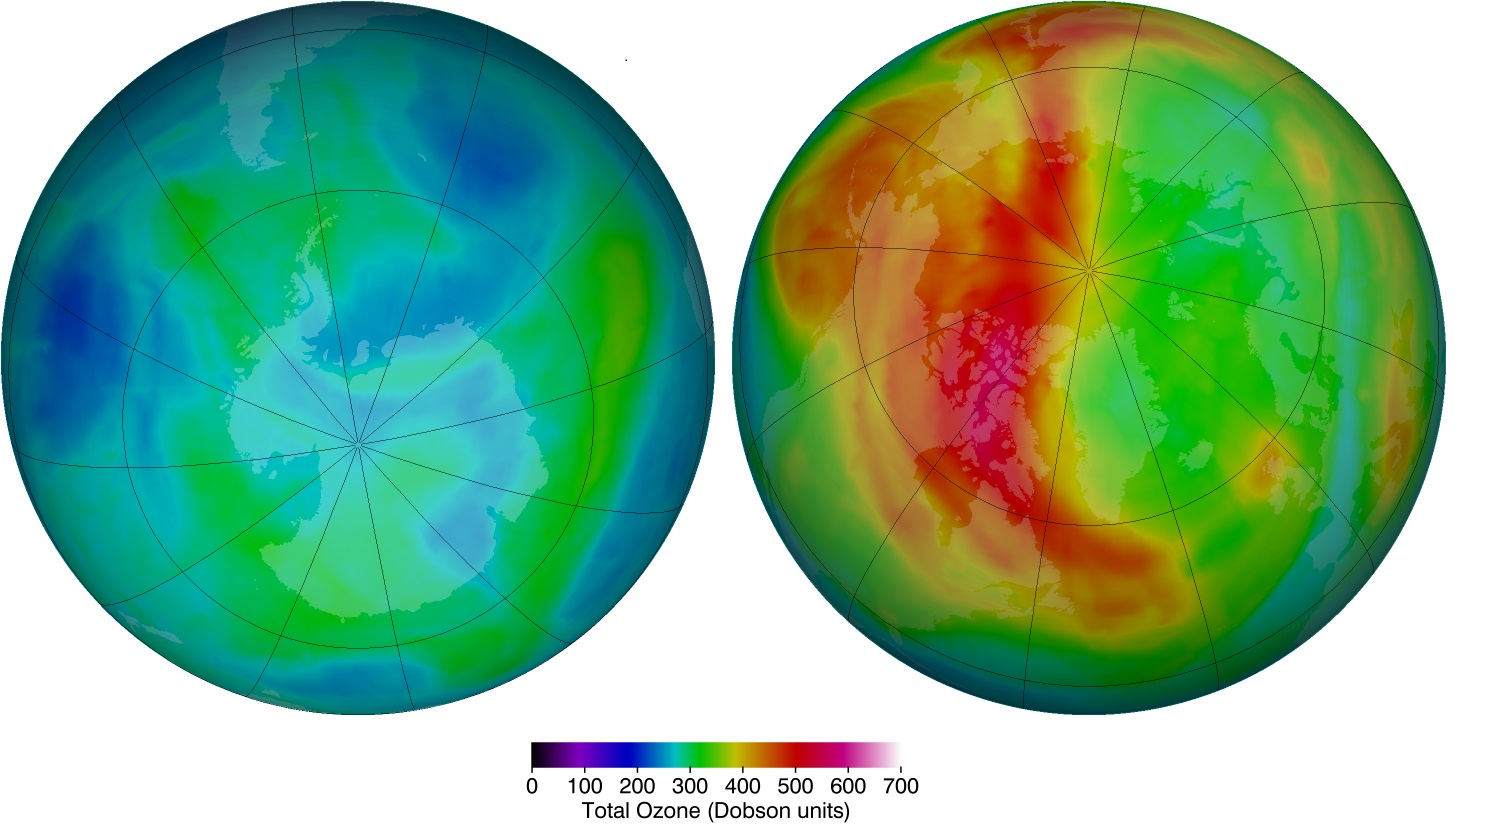 Scientists Identify Four New Ozone Depleting Gases in Atmosphere ... a2dfa5eacb11